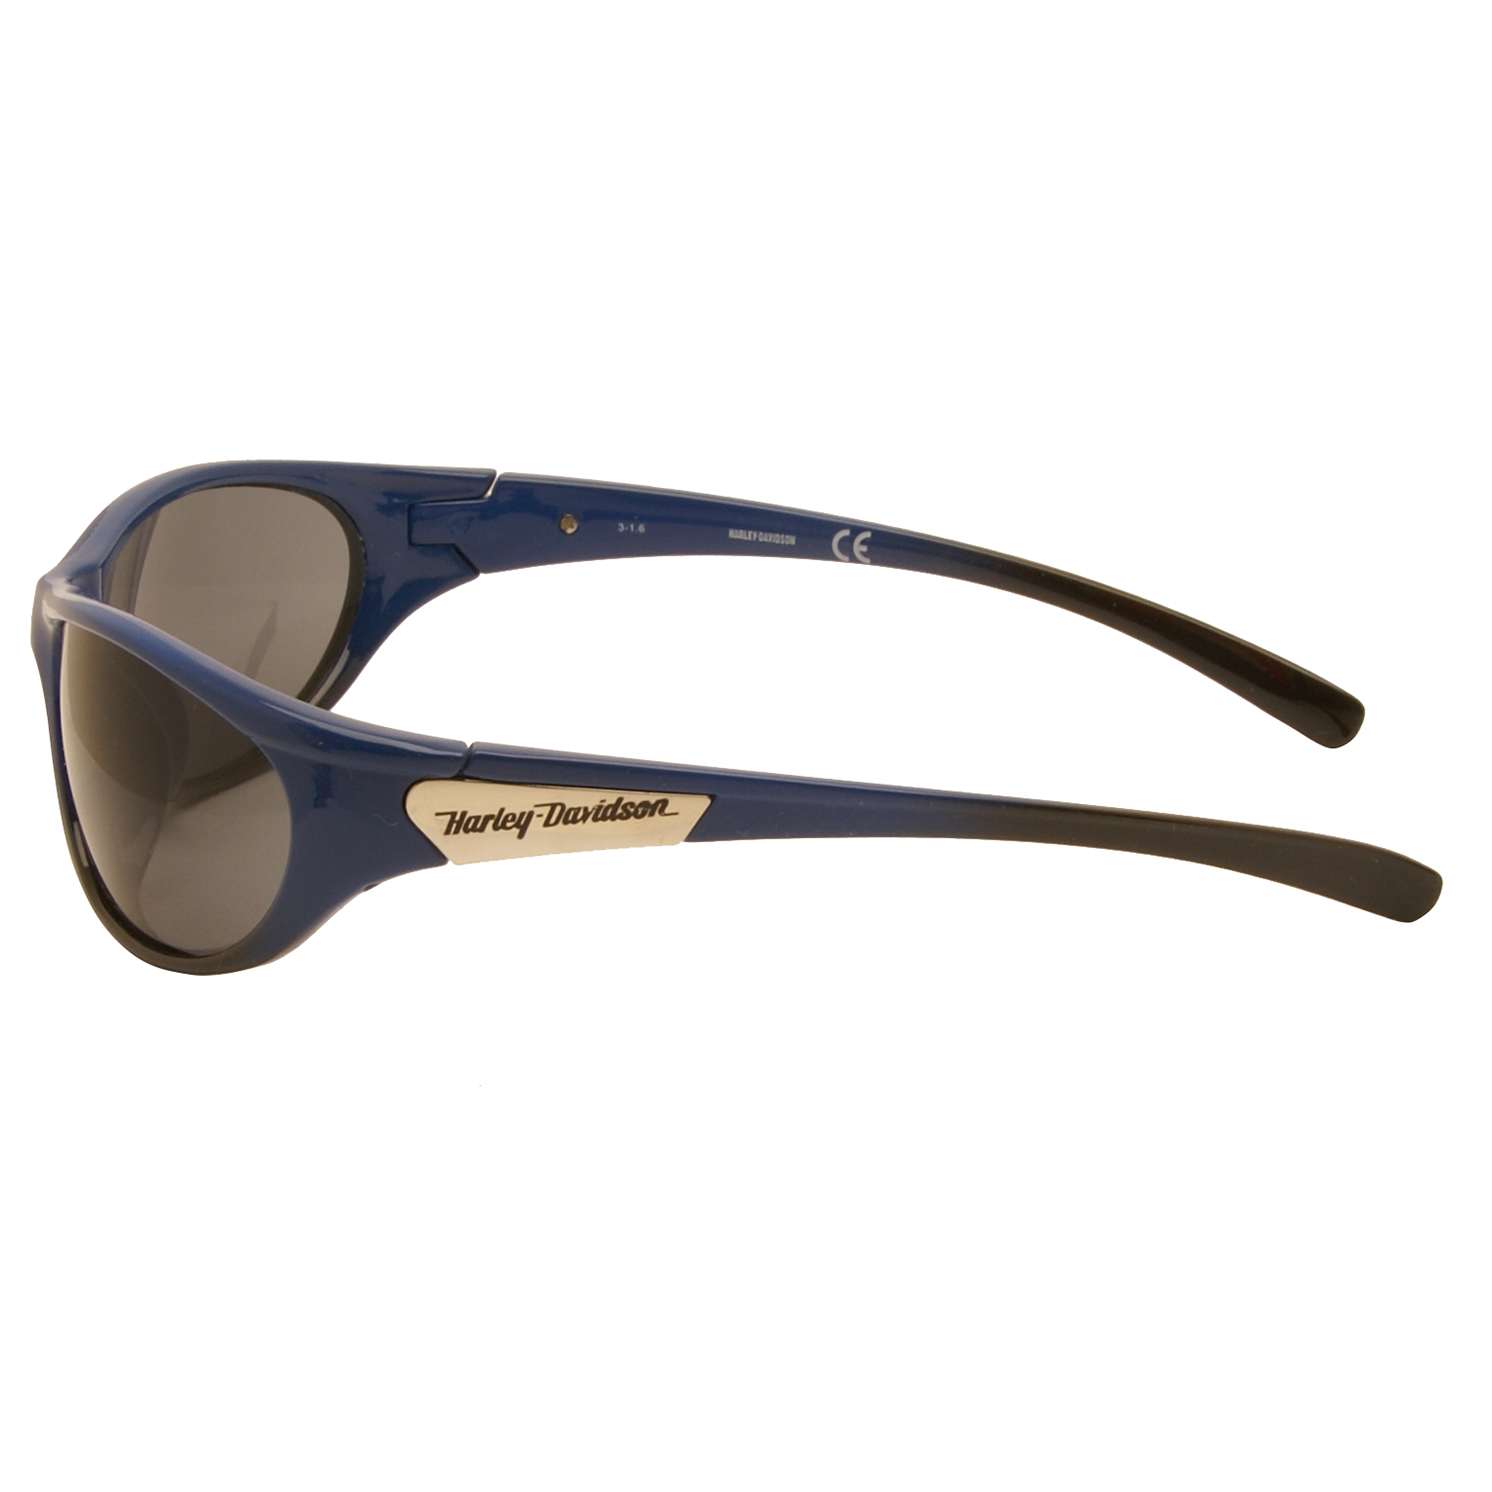 Harley Davidson – Shiny Blue & Black Wraparound Style Sunglasses with Case